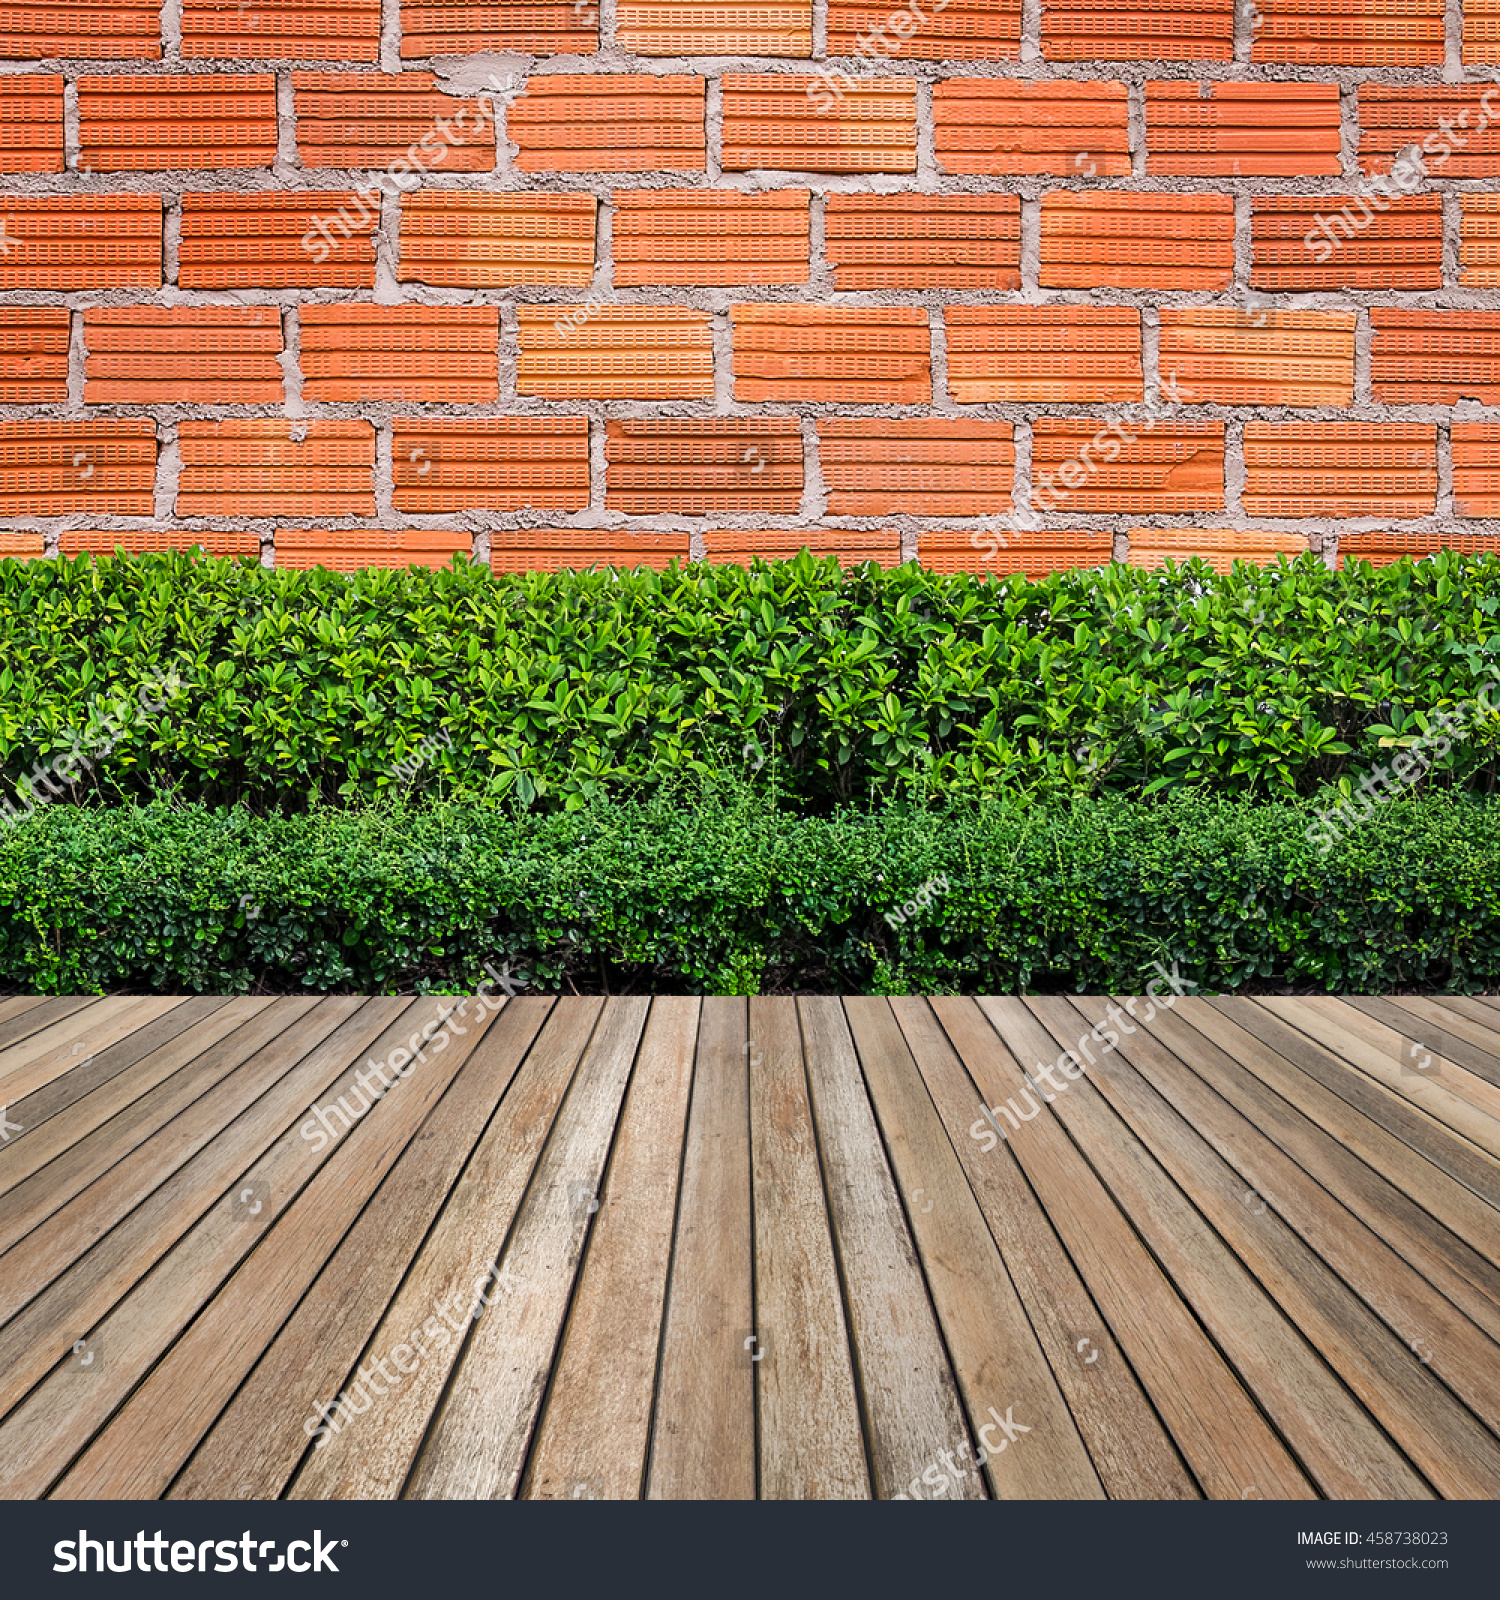 Wooden Flooring Plant Garden Decorative On Stock Photo (Royalty Free ...